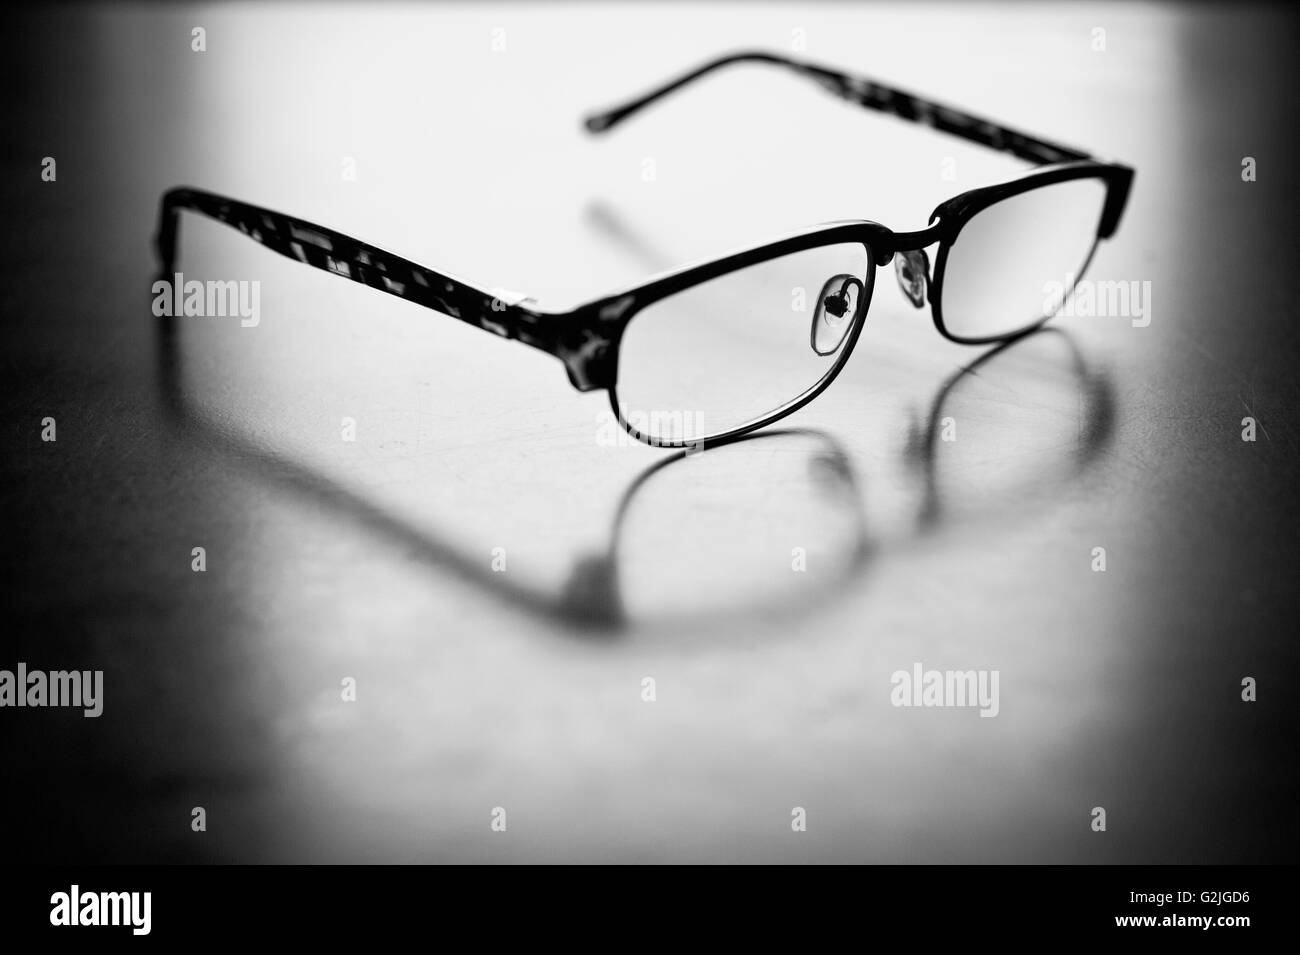 Eyeglasses on a white sheet of paper - Stock Image